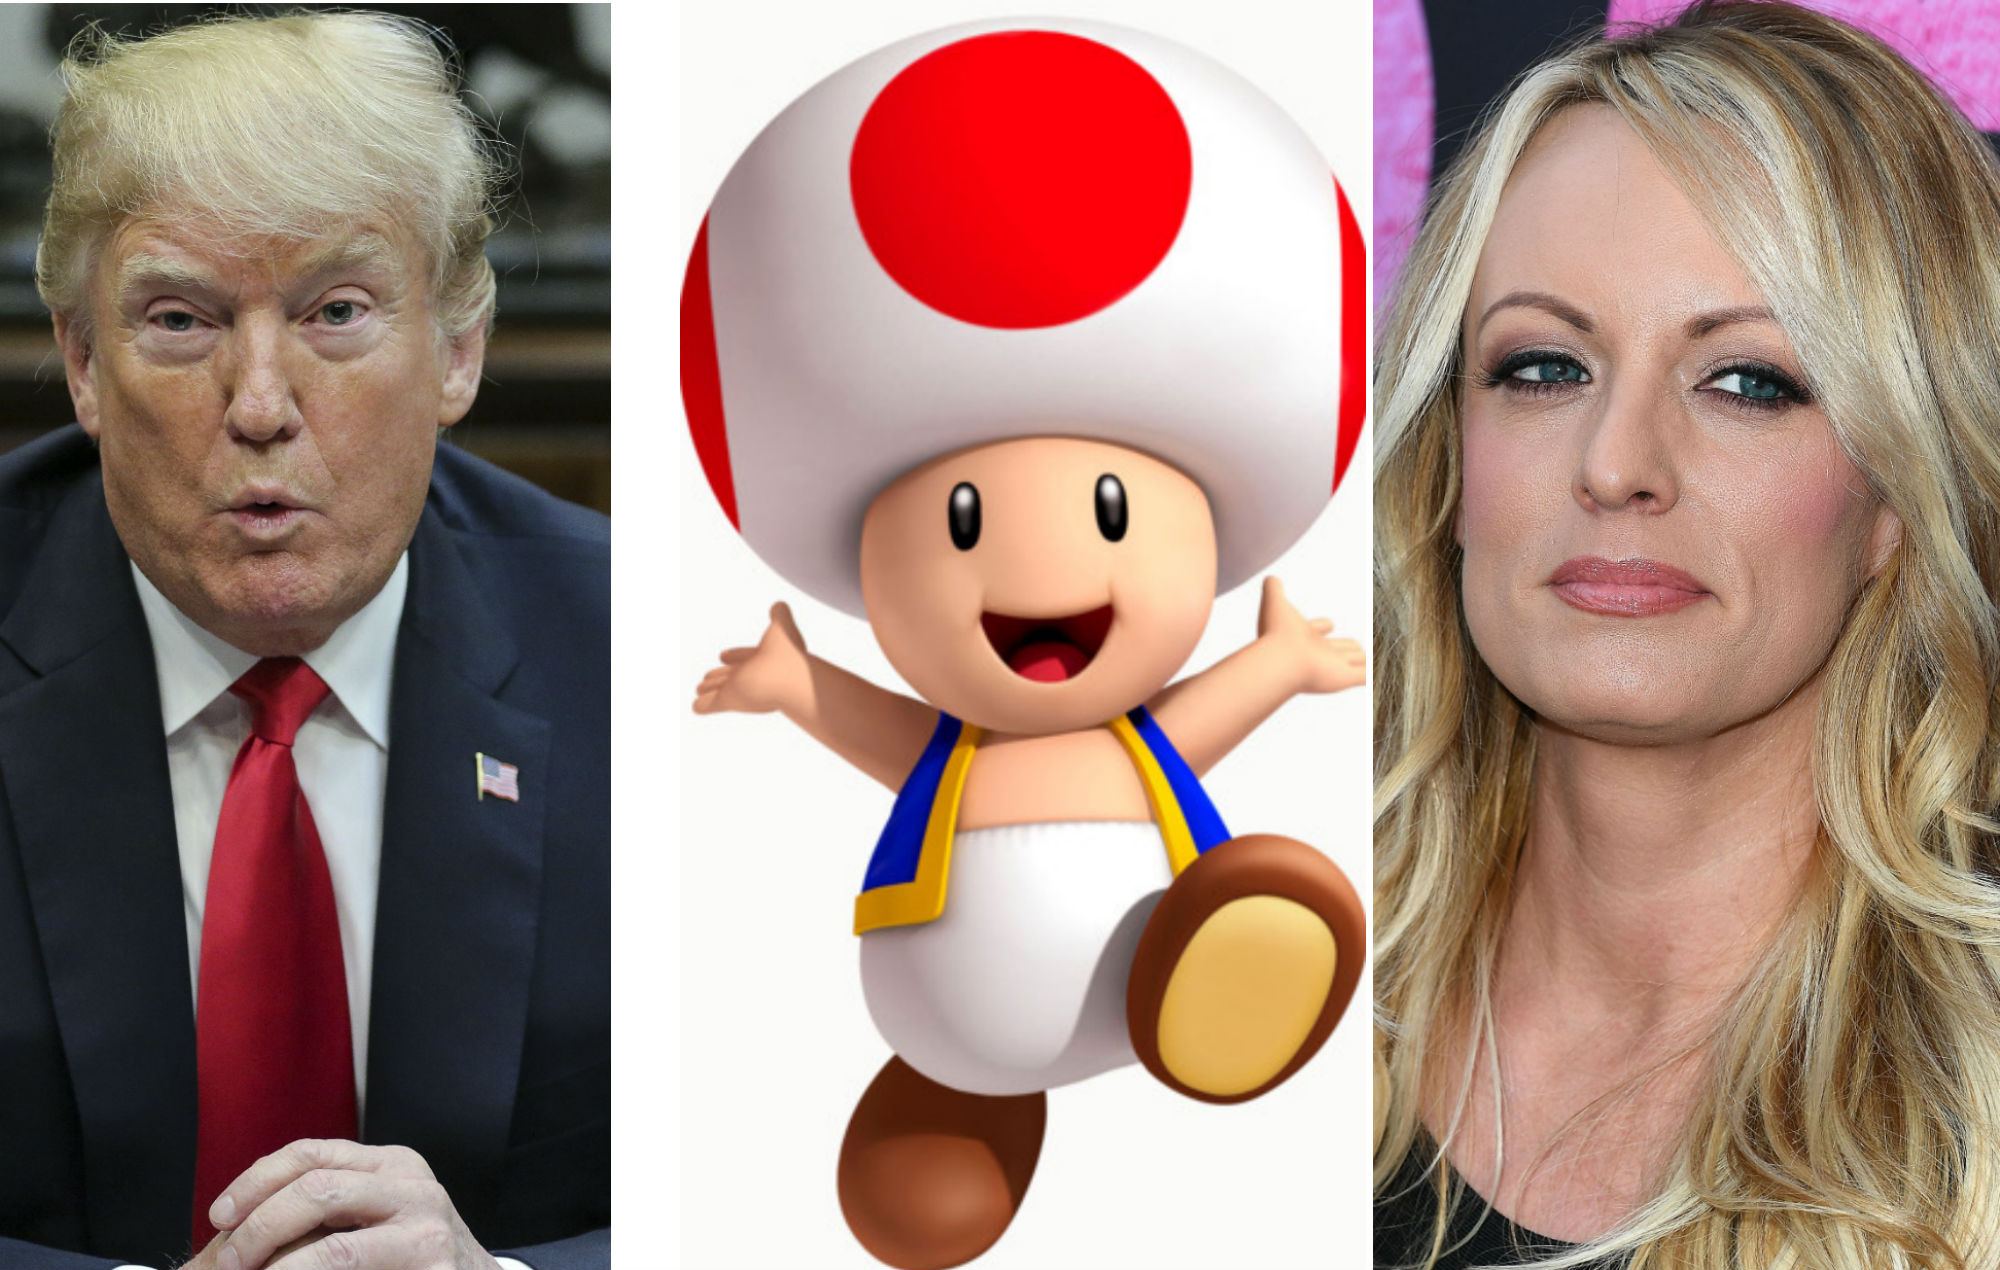 Stormy Daniels Compares Donald Trump S Penis To Toad From Mario Kart